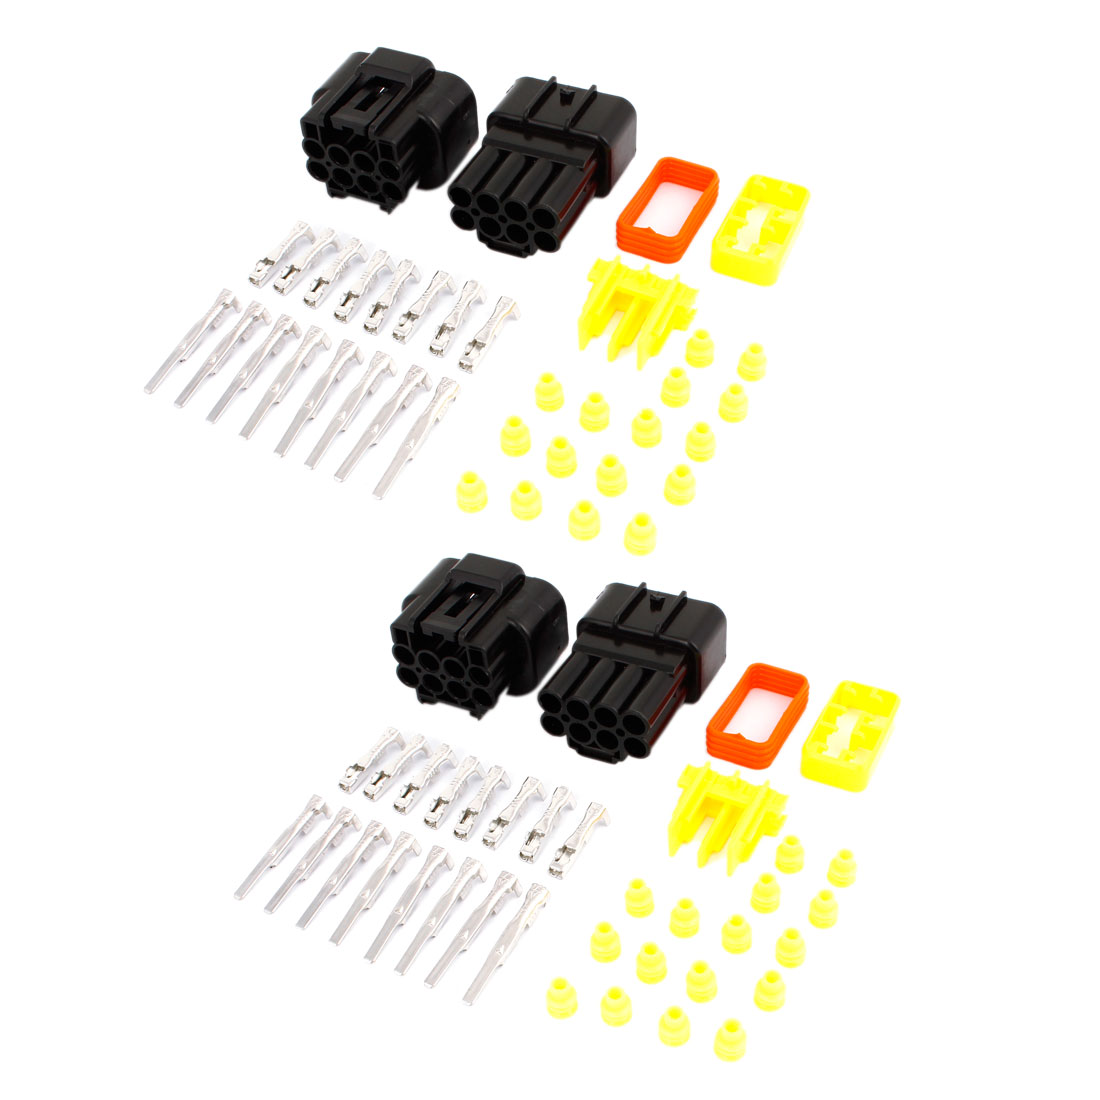 2 Set 8-Pin 8 Way Sealed Waterproof Cable Connectors Plugs for Car Auto Stereo